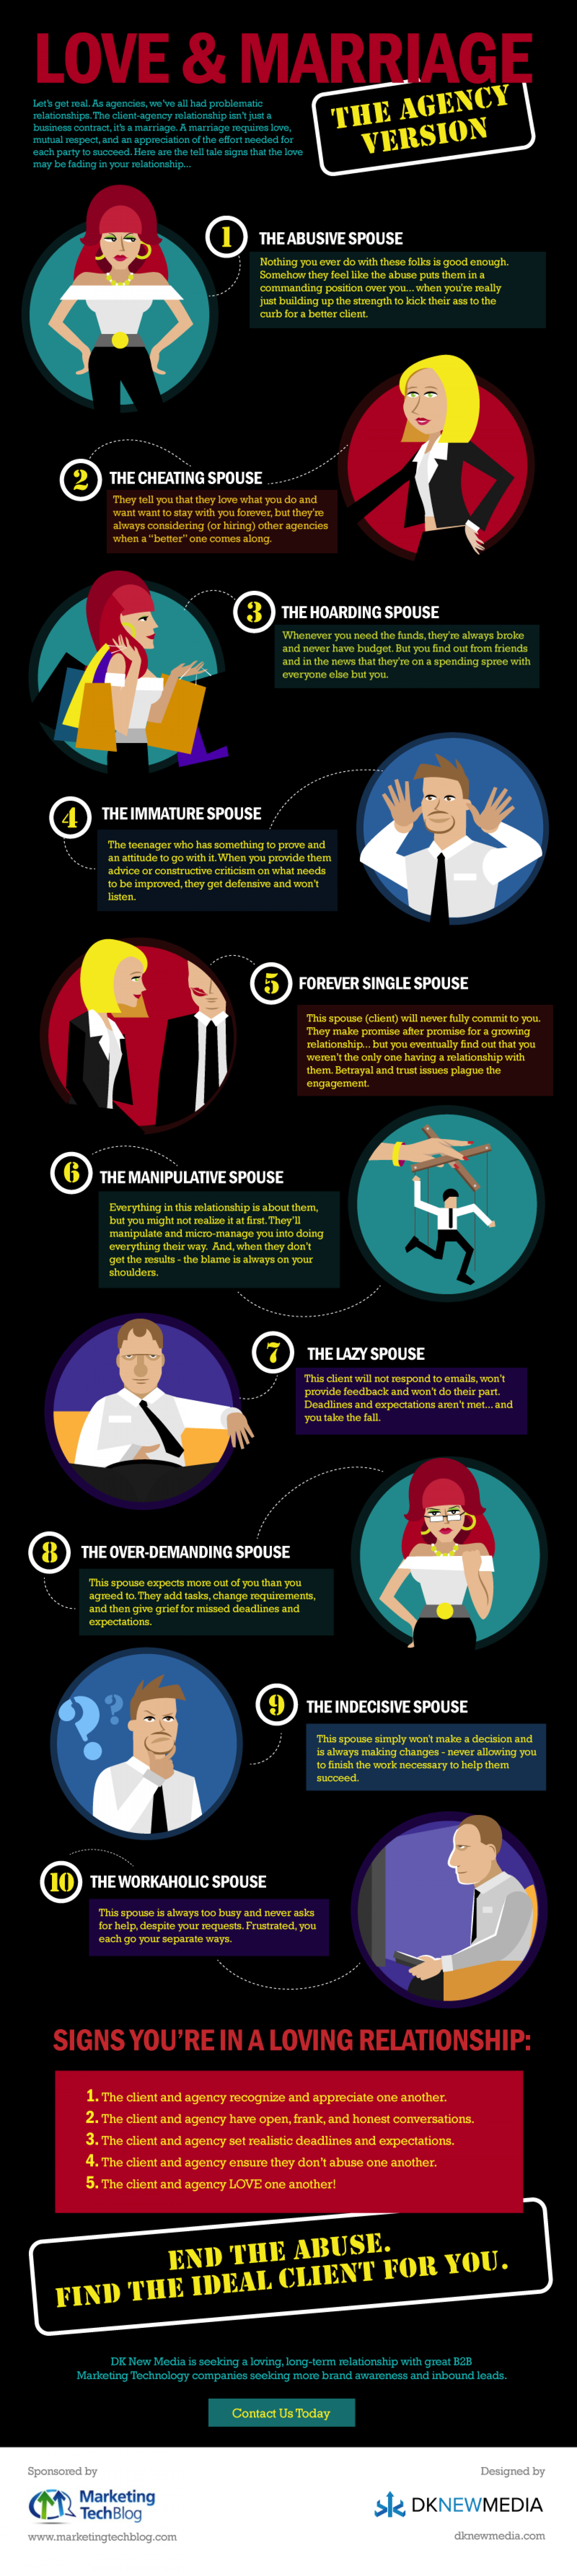 Love and Marriage - The Agency Version Infographic